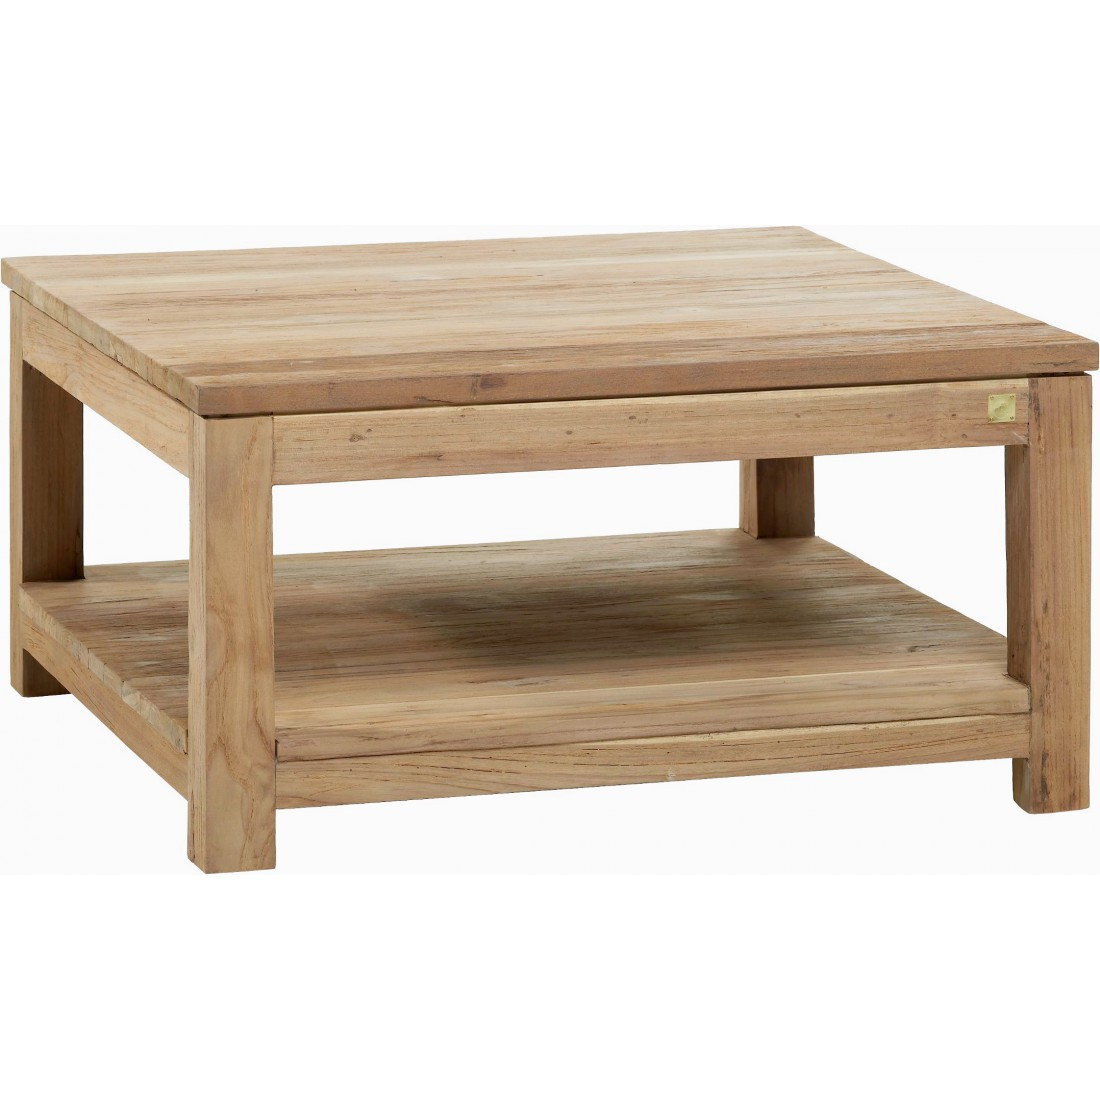 recycled brushed teak coffee table 80 x 80